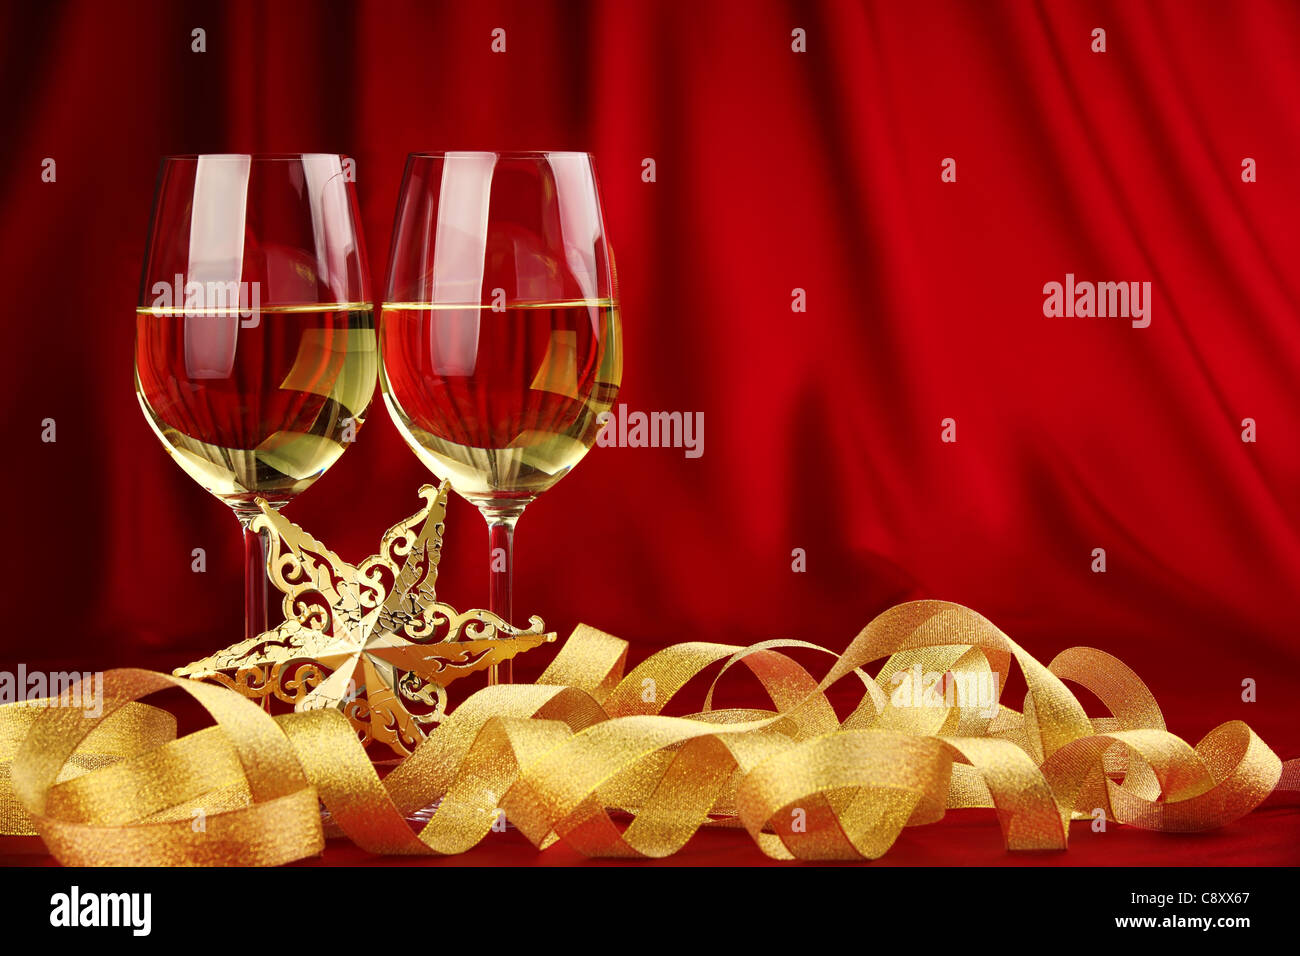 Glasses of champagne with golden ribbon. - Stock Image